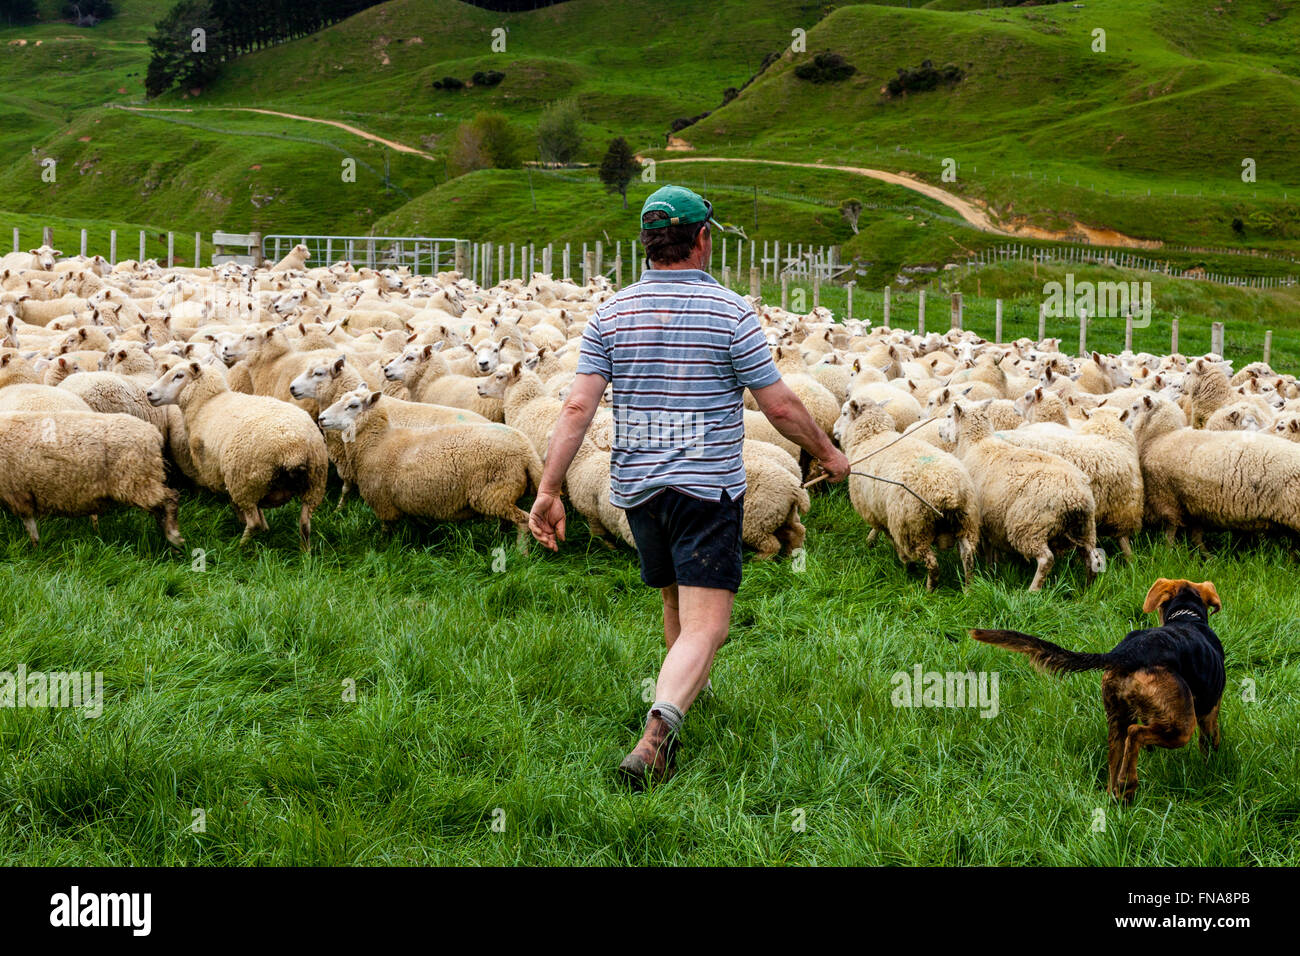 Sheep In A Pen Waiting To Be Marked and Weighed, Sheep Farm, Pukekohe, North Island, New Zealand - Stock Image